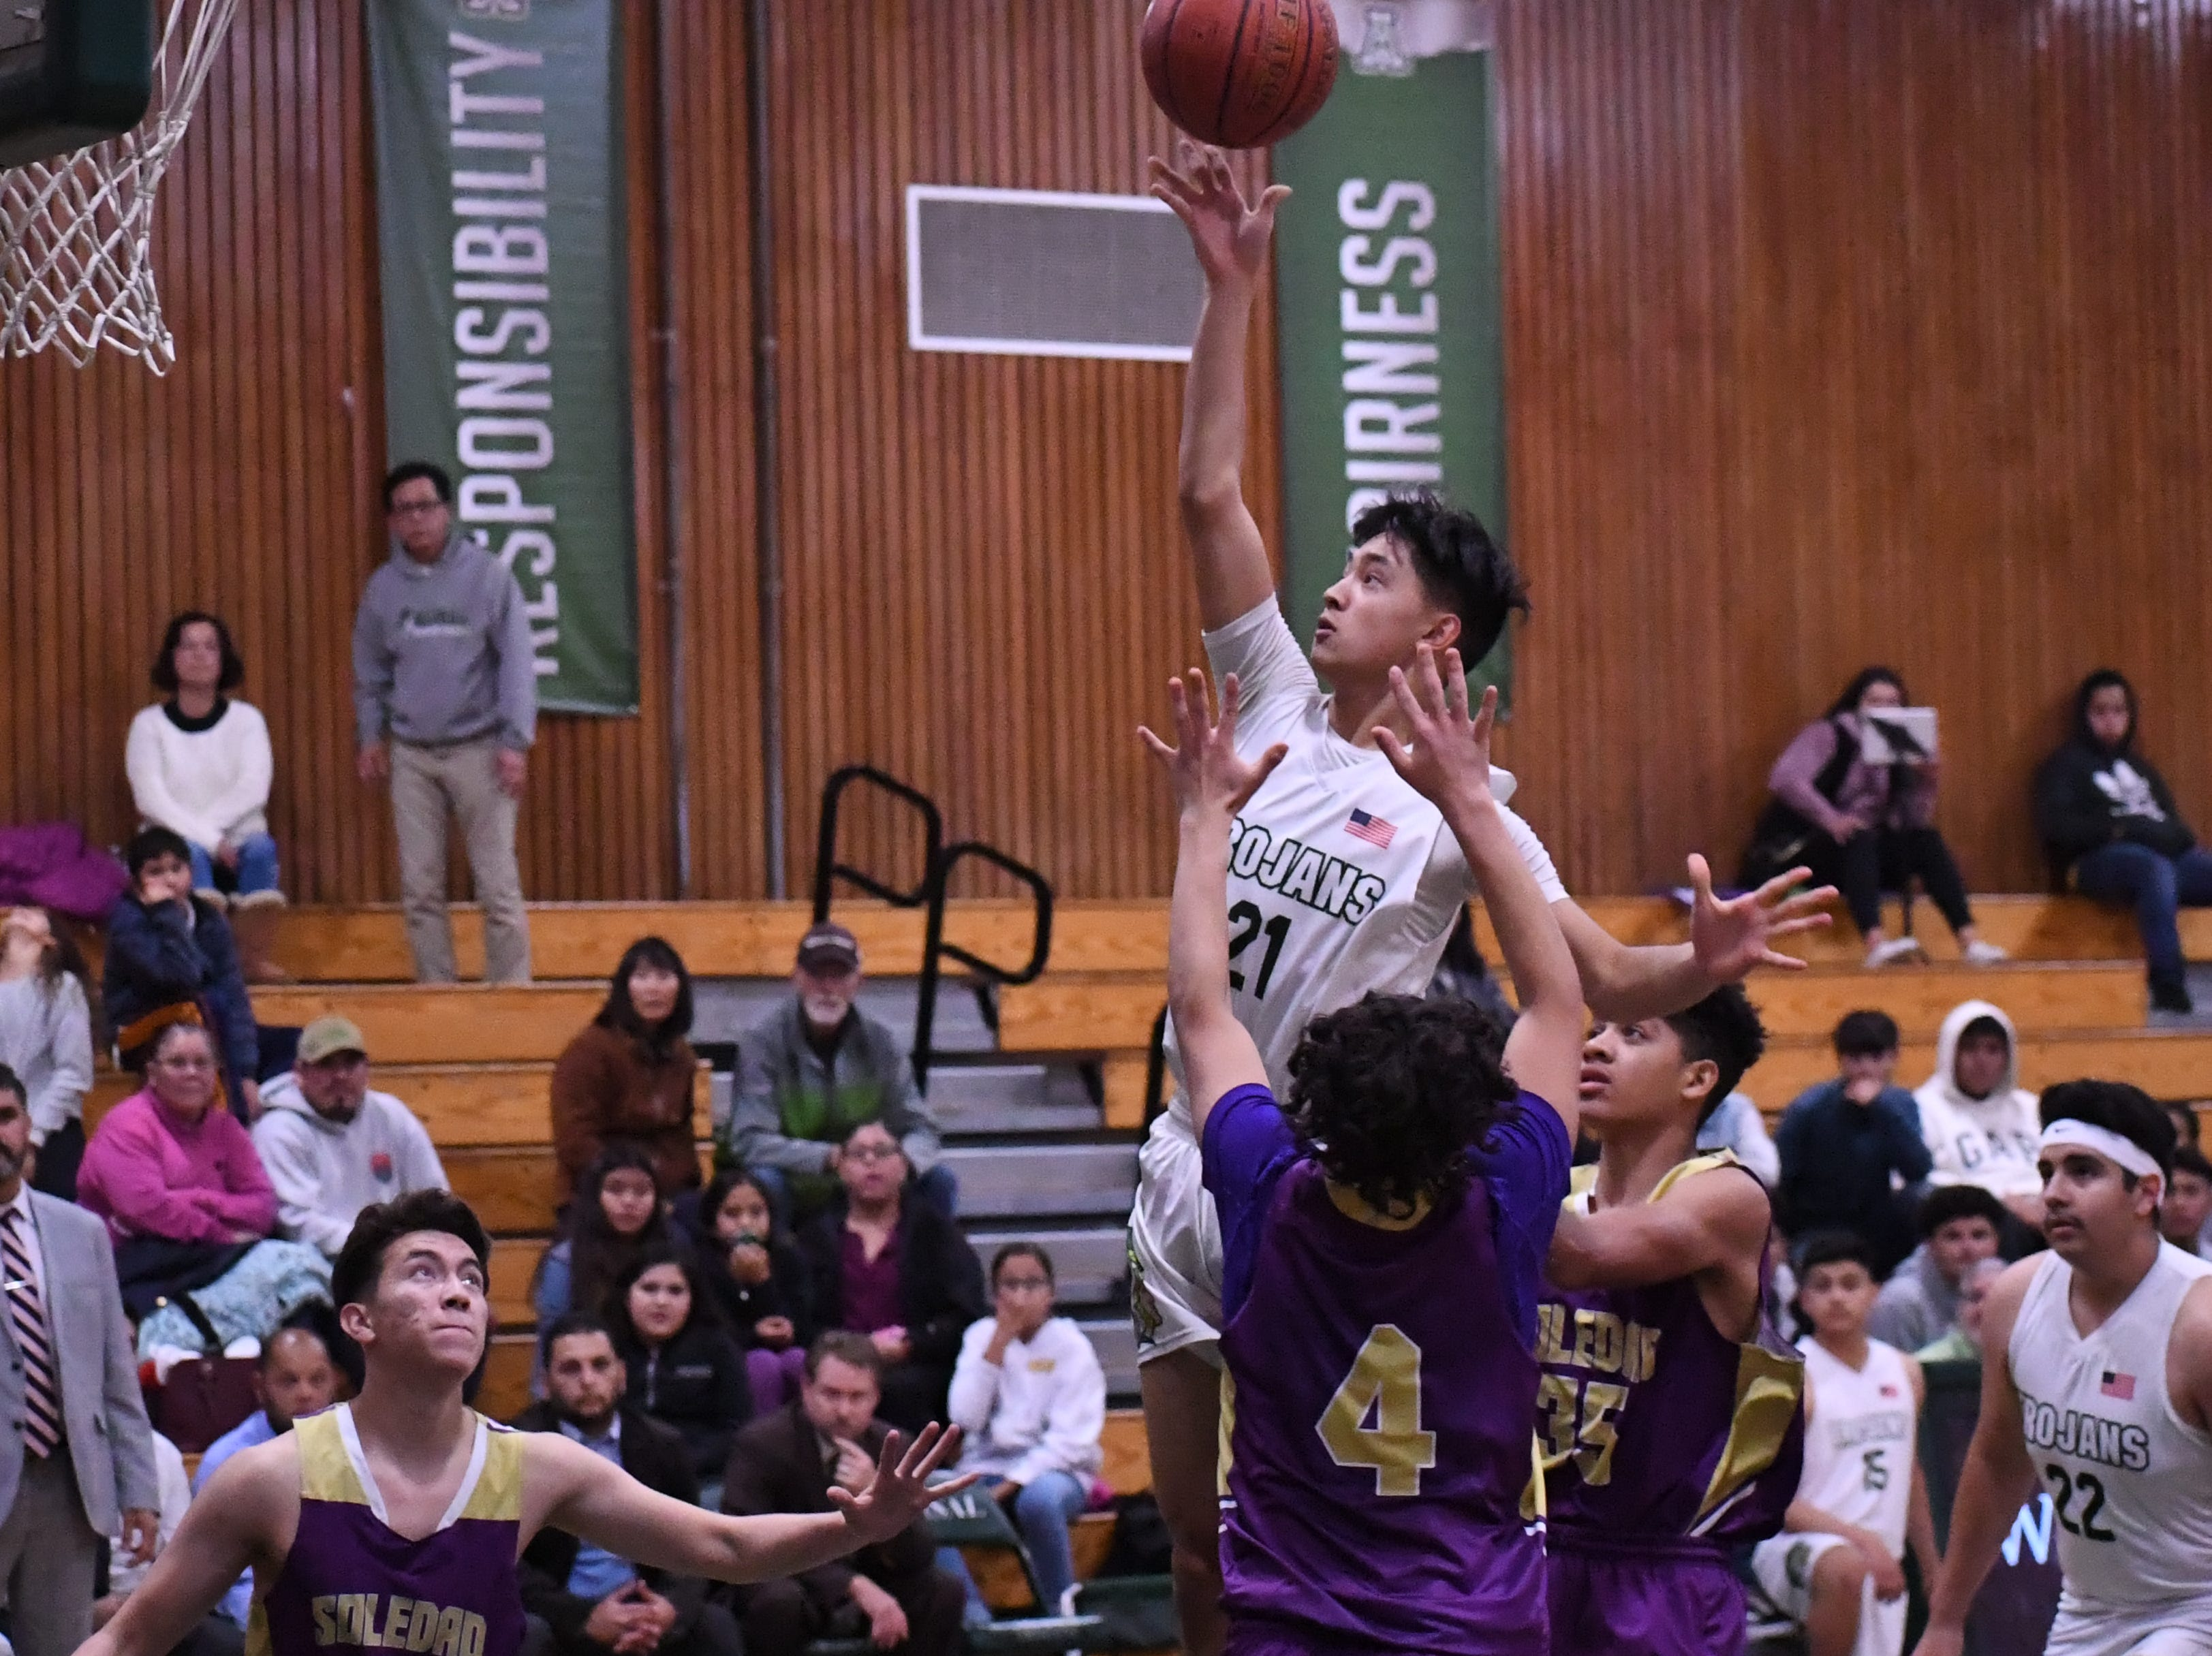 Junior Shawn Vuong (21) pulls up for a floater in the lane.